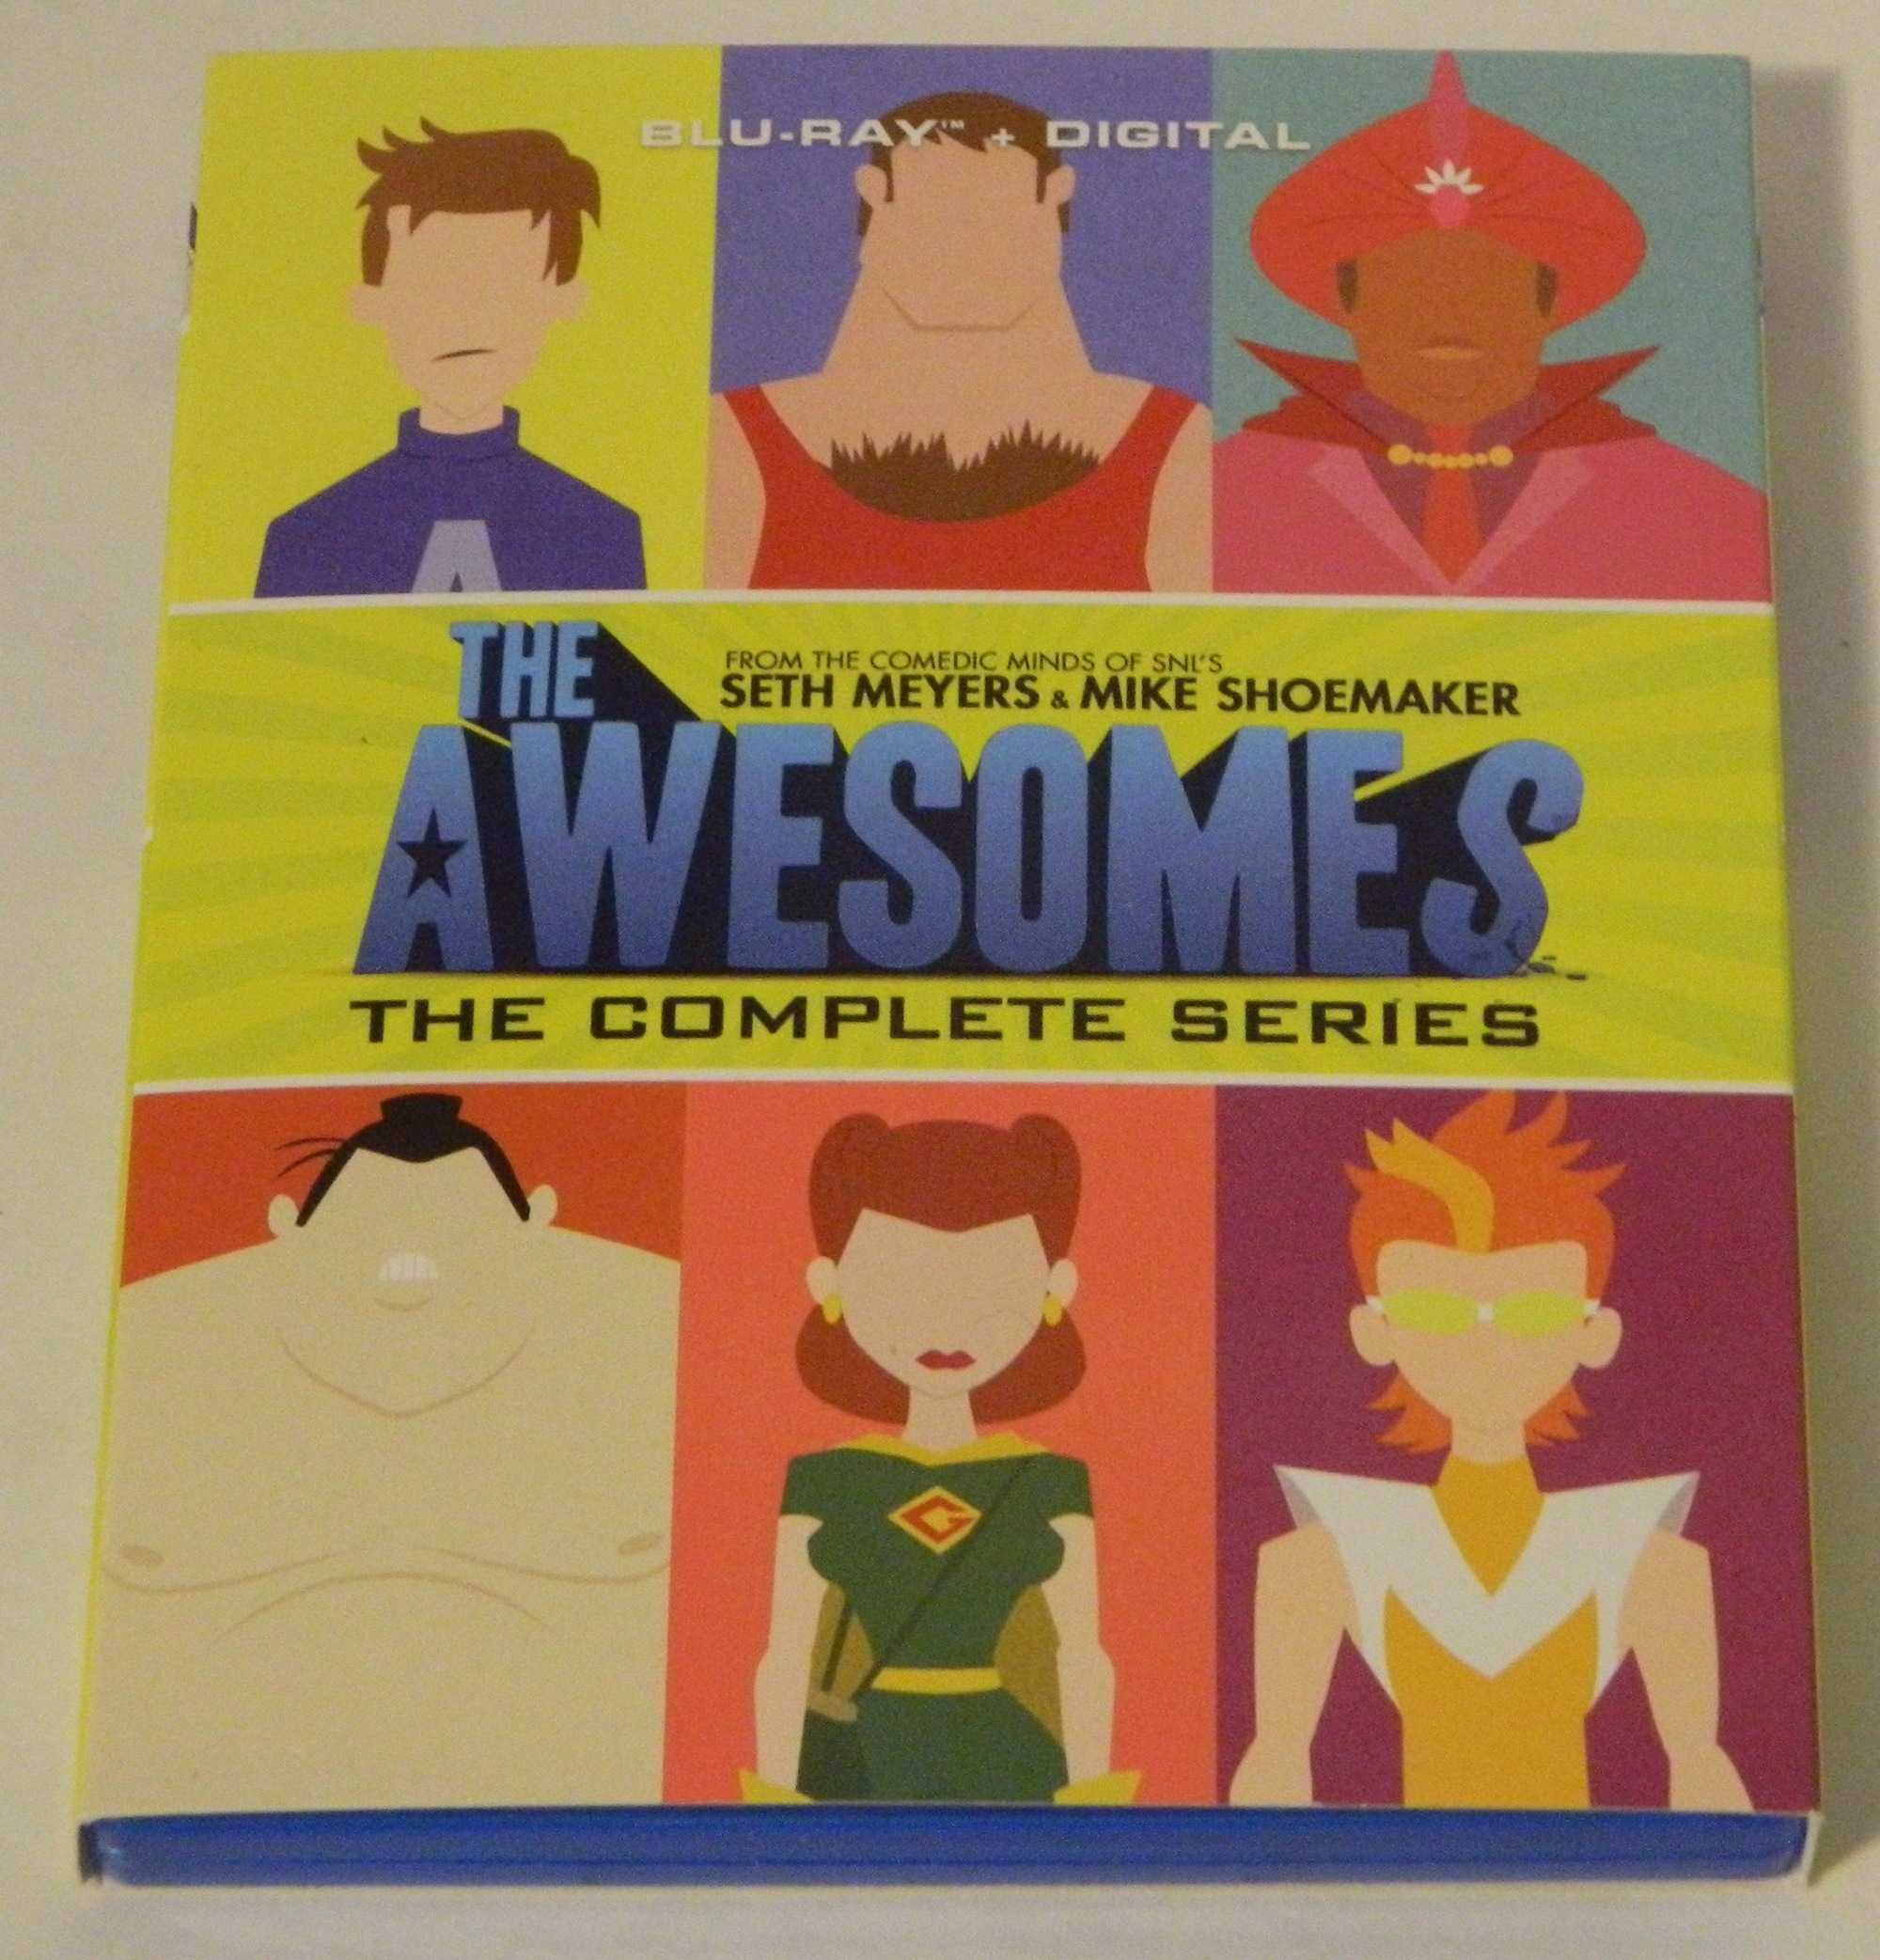 The Awesomes The Complete Series Blu-ray